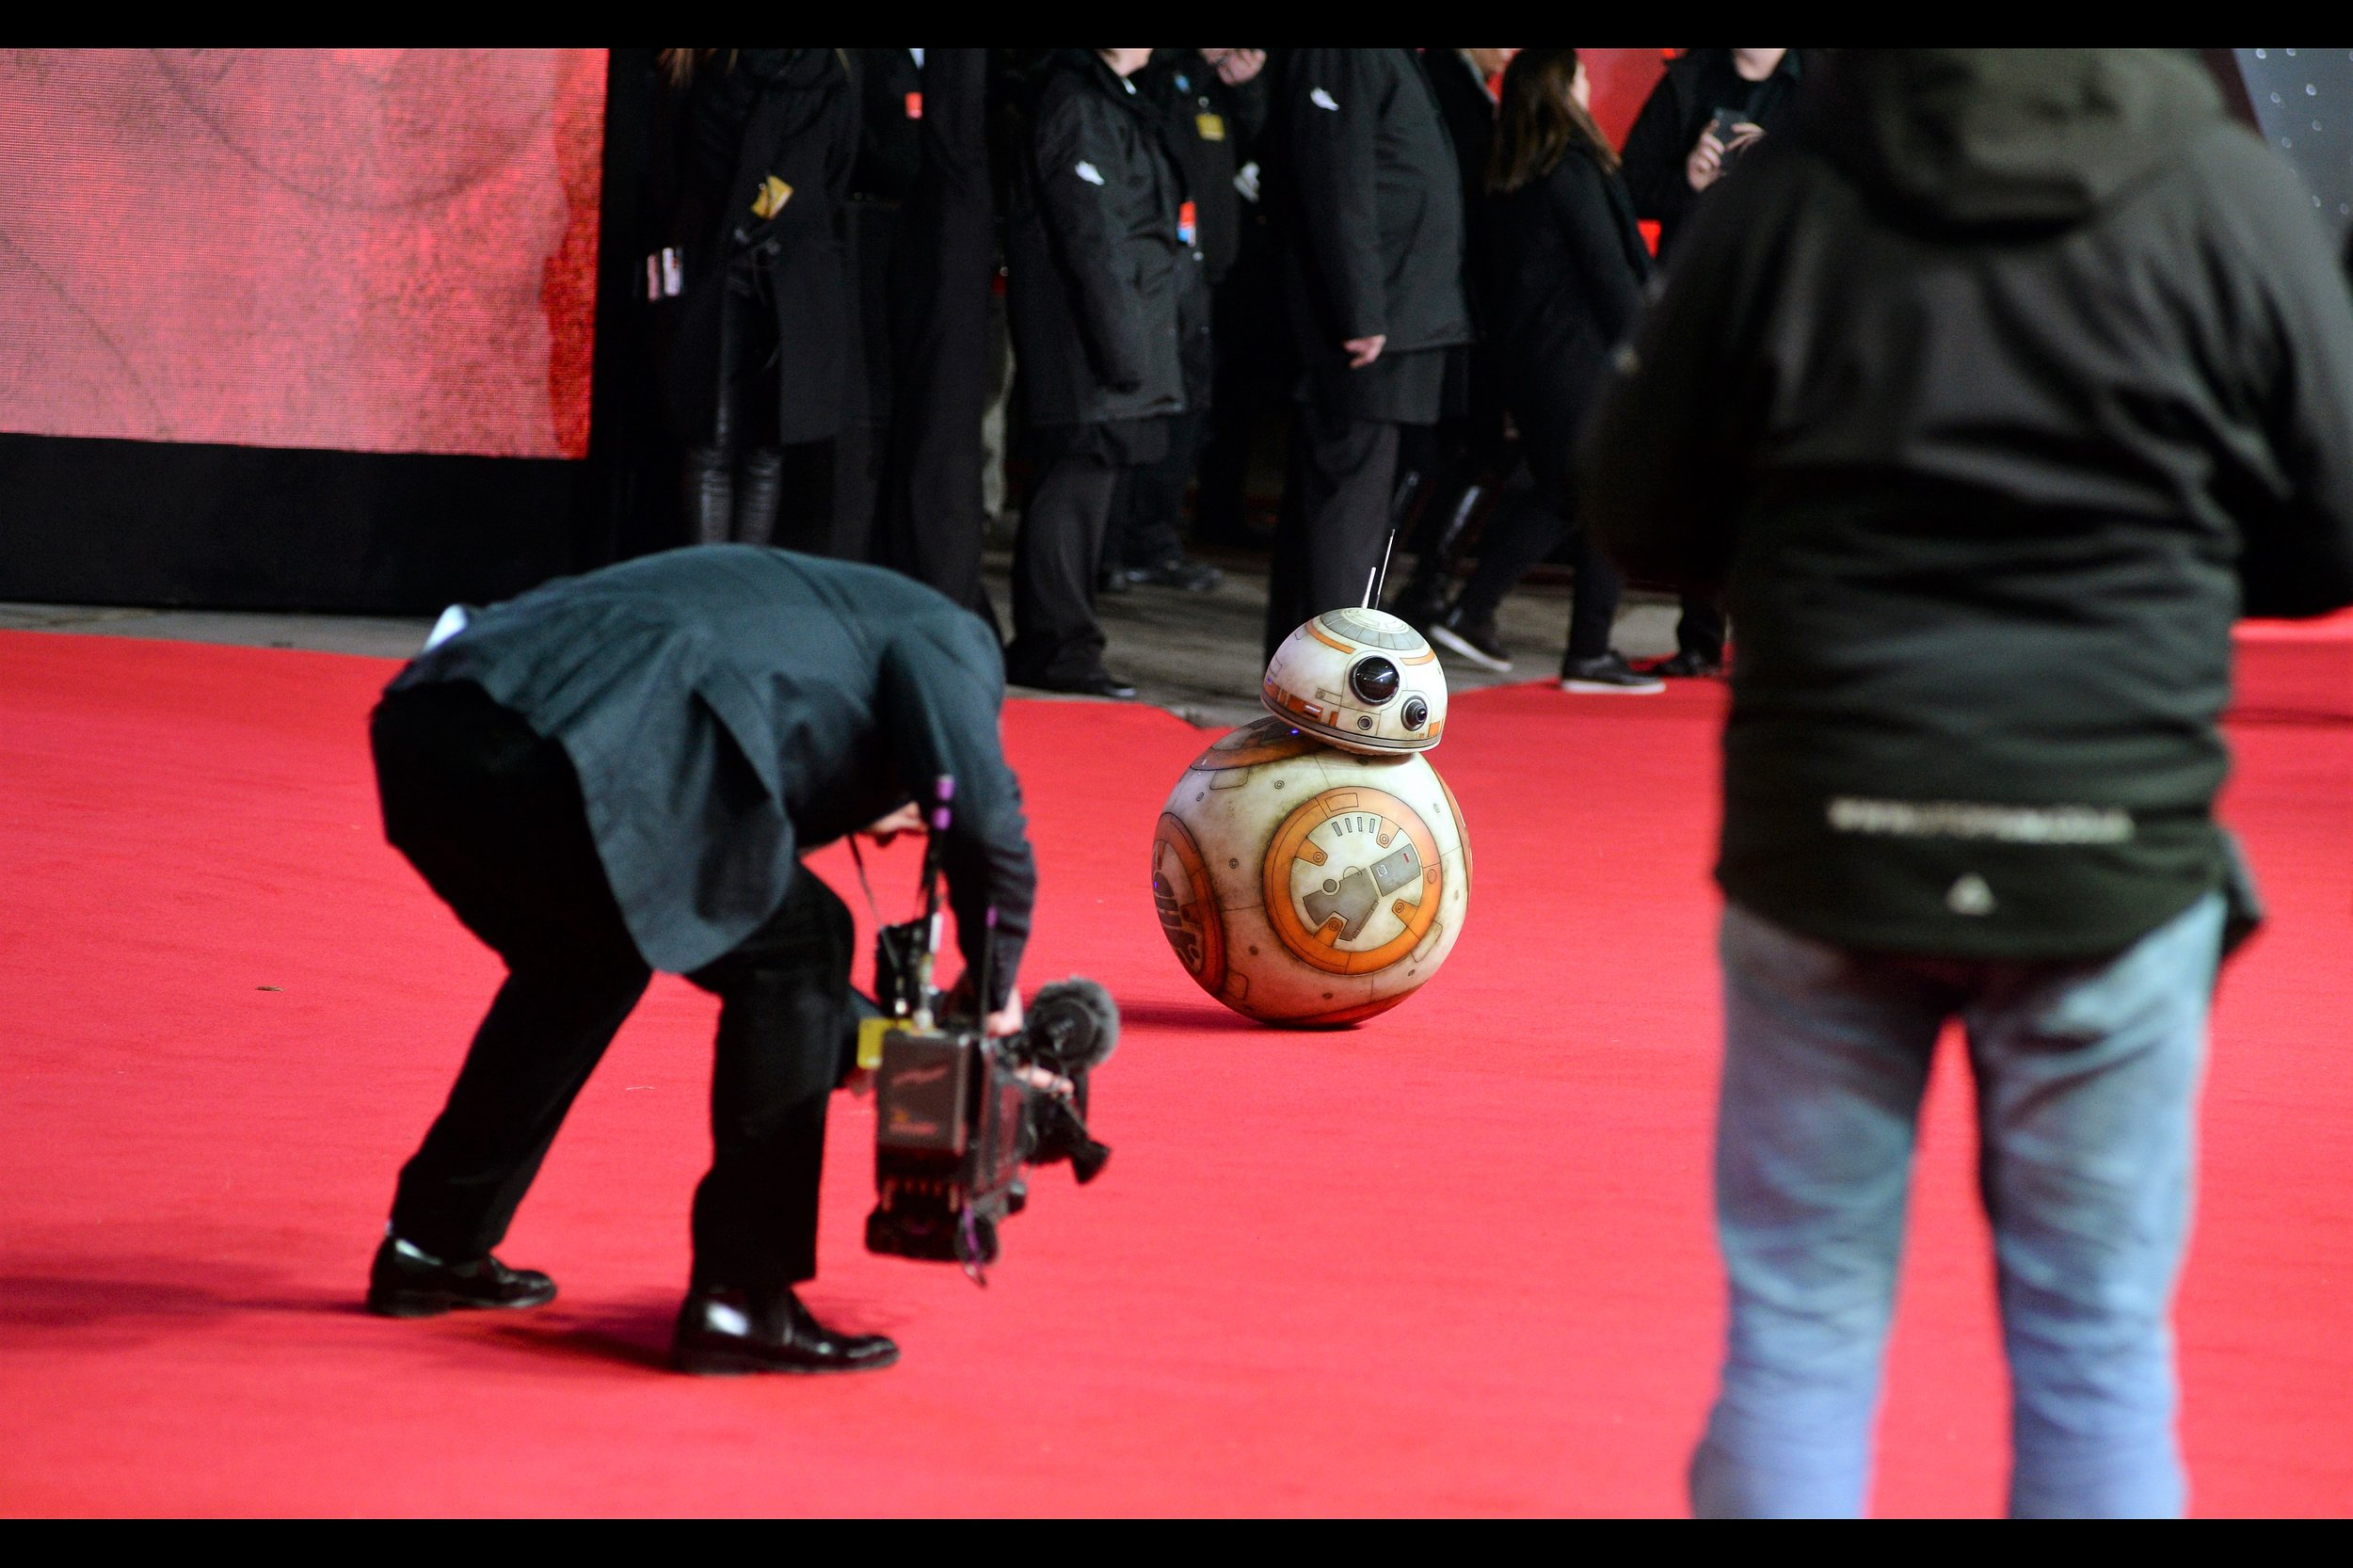 It's BB-8 ! He didn't pose for selfies or sign a single autograph for fans. But then again, he's short and doesn't have arms...